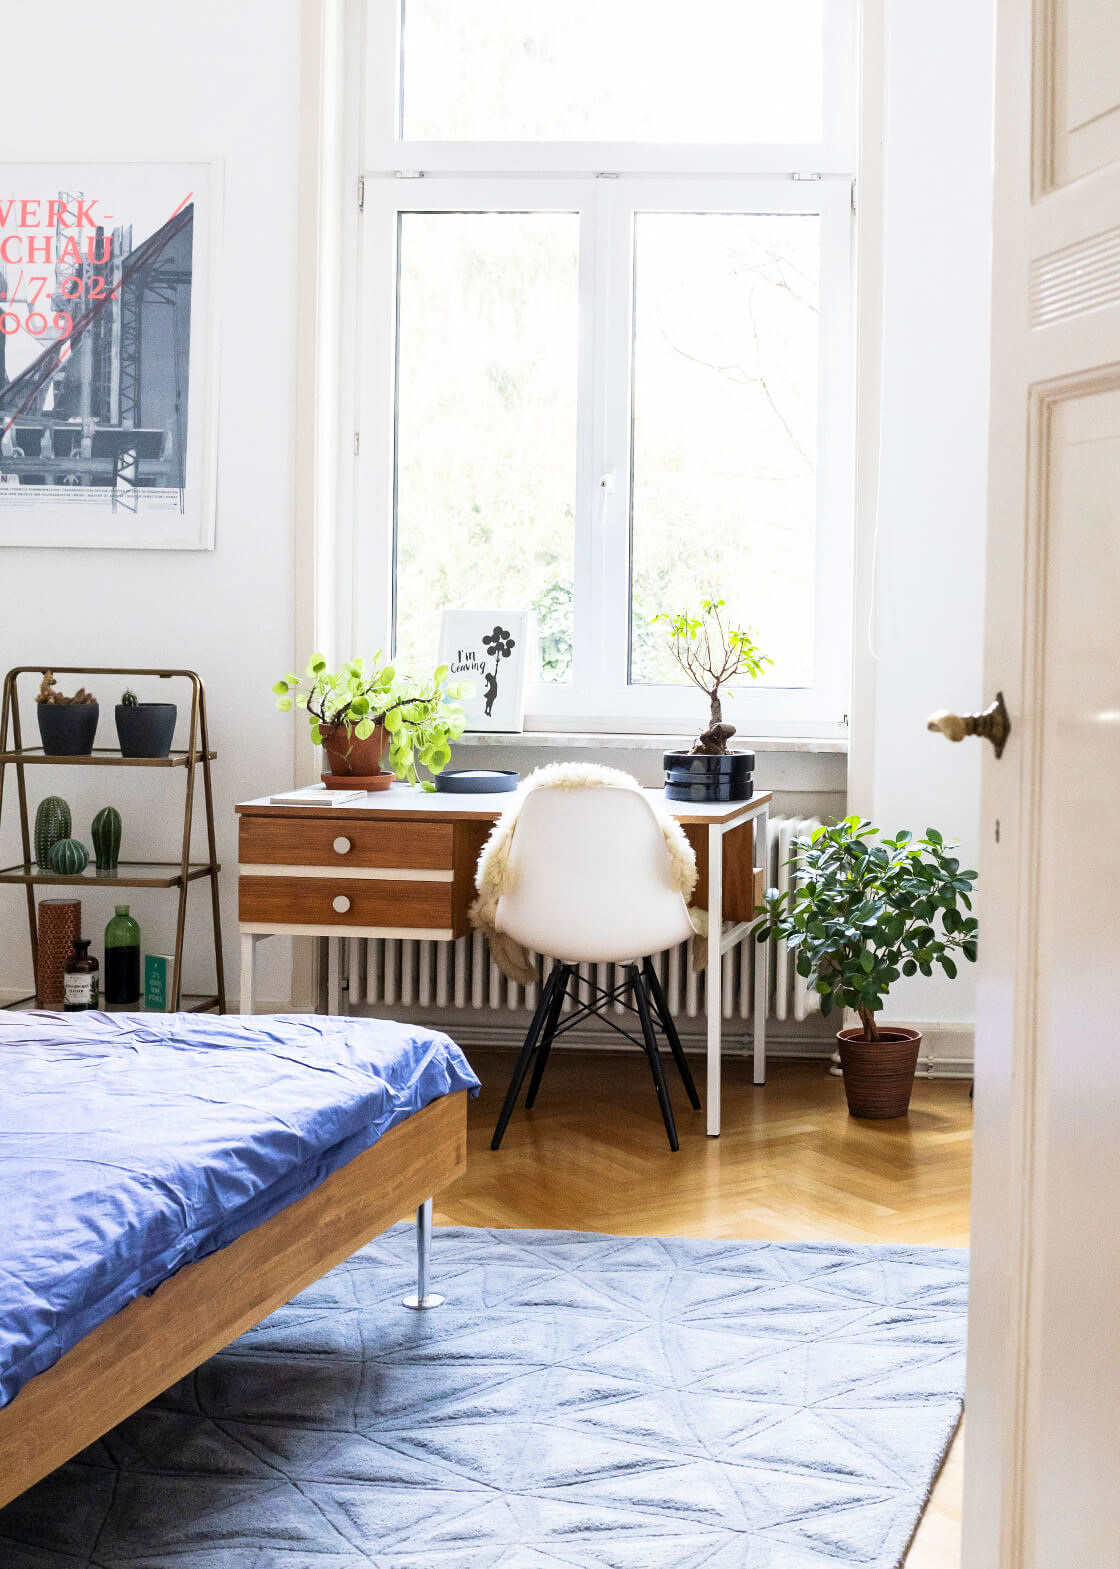 indiangoodsco_blog_stories_design inspiration_home tour_colourful minimal apartment_frankfurt_1